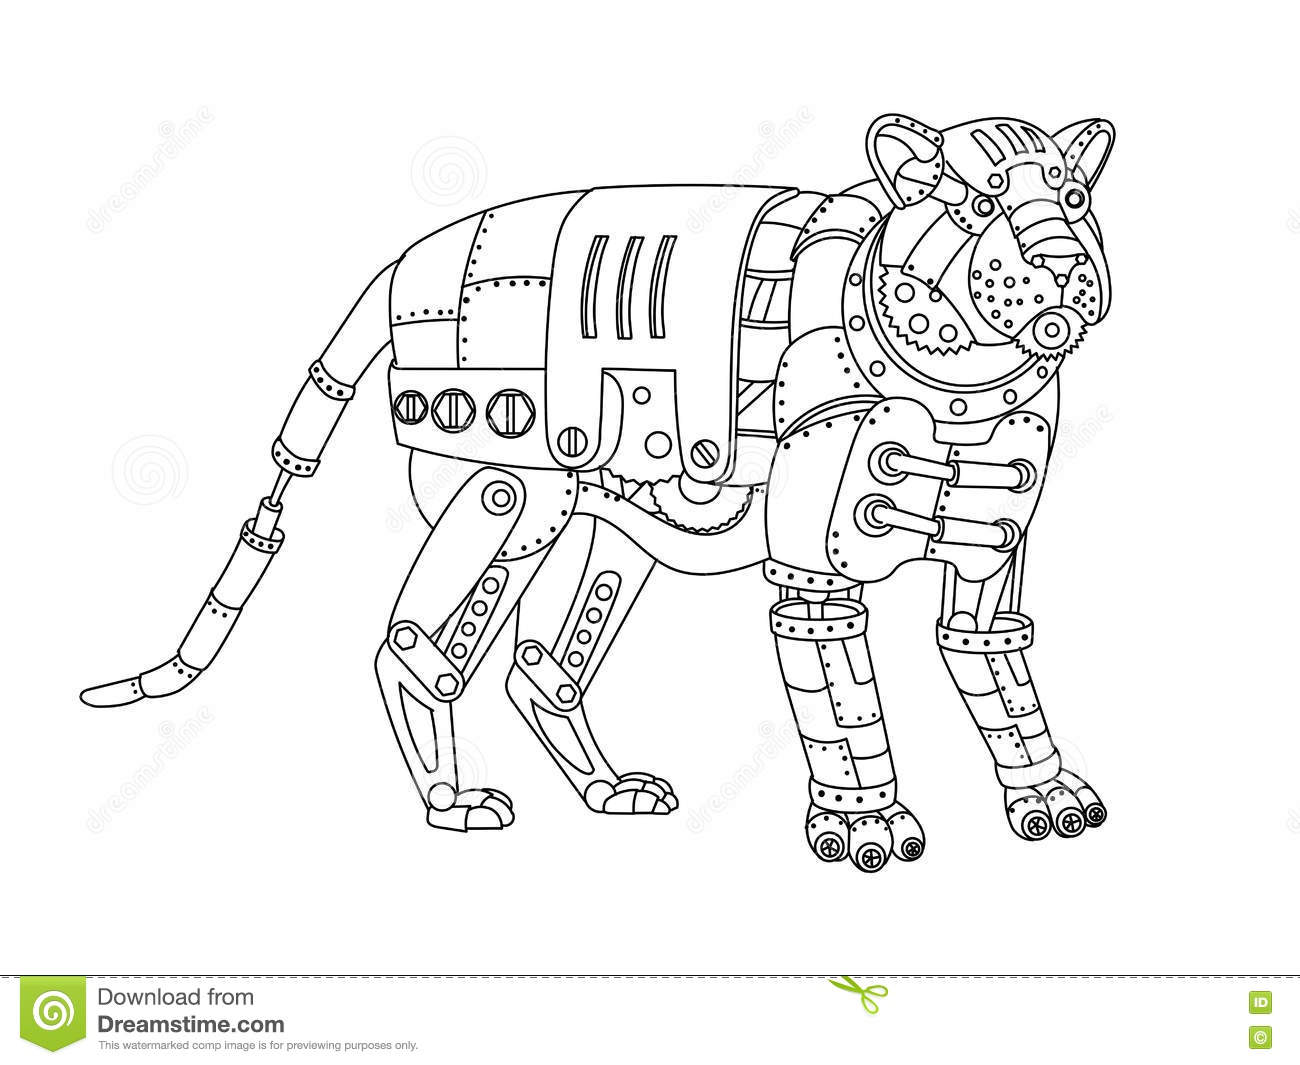 free animal mechanicals coloring pages - photo#18